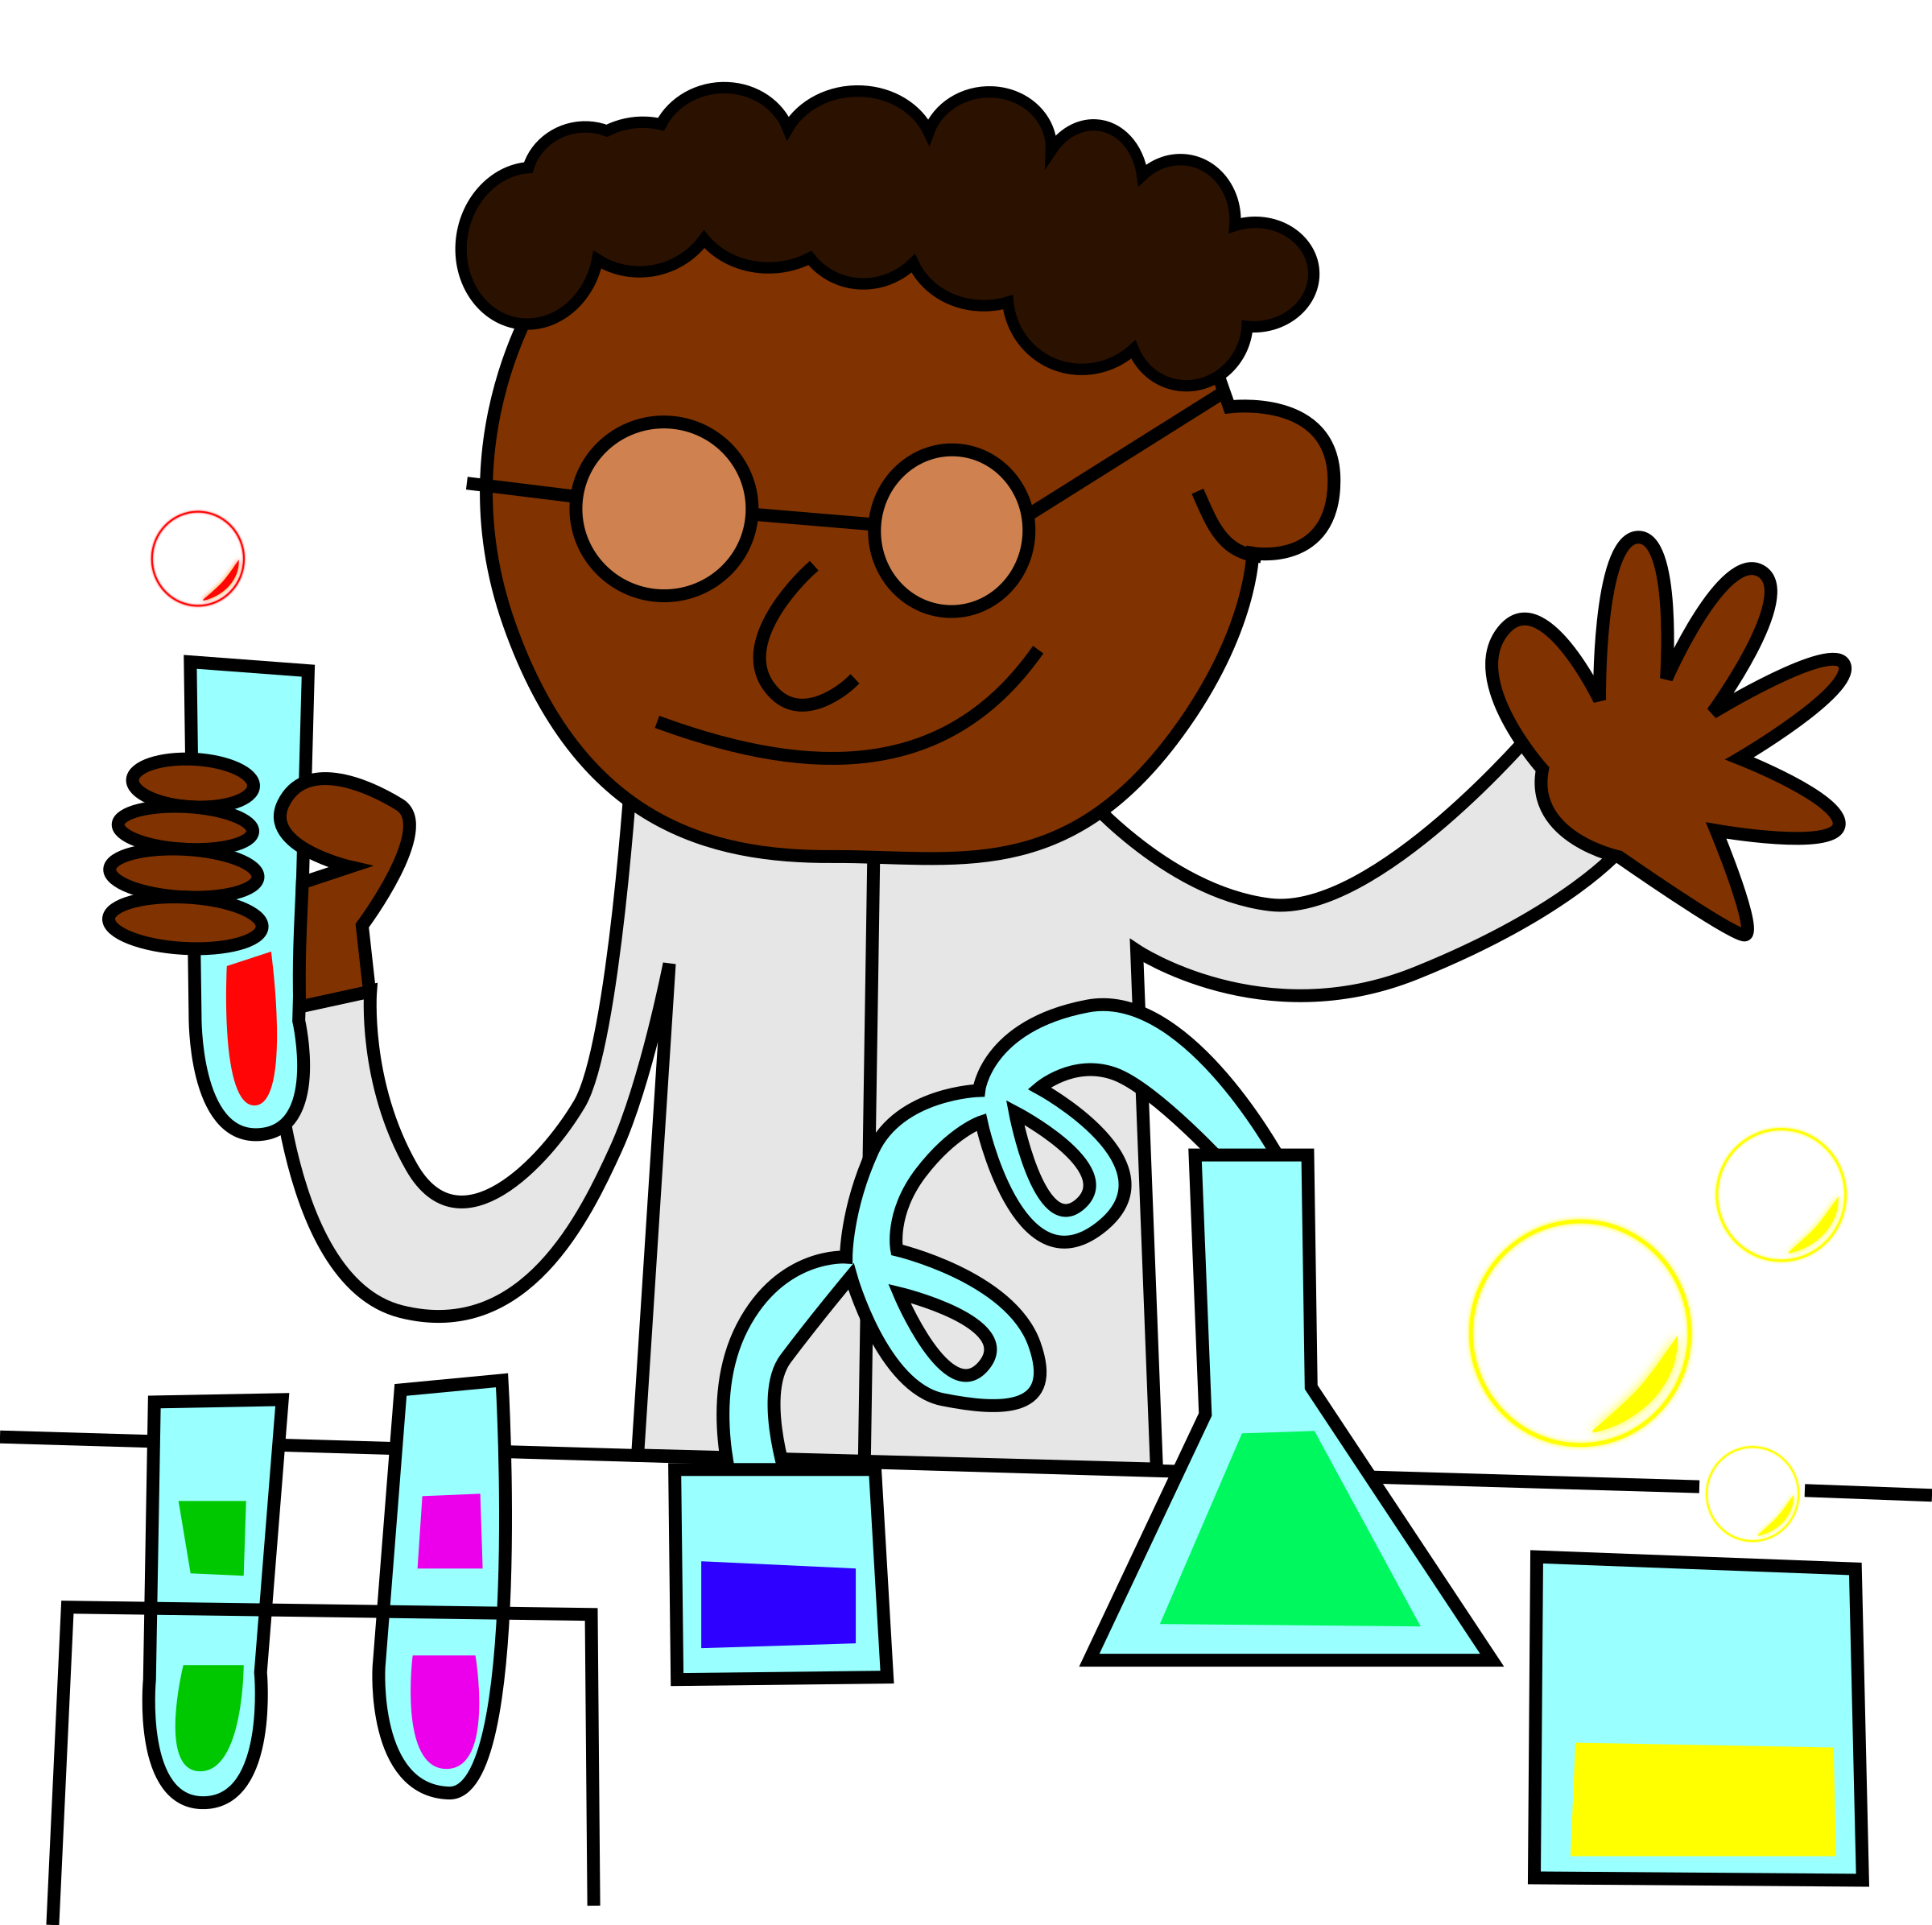 Money scientist clipart image transparent Mid-career researchers are losing out in funding wars - Life Science ... image transparent